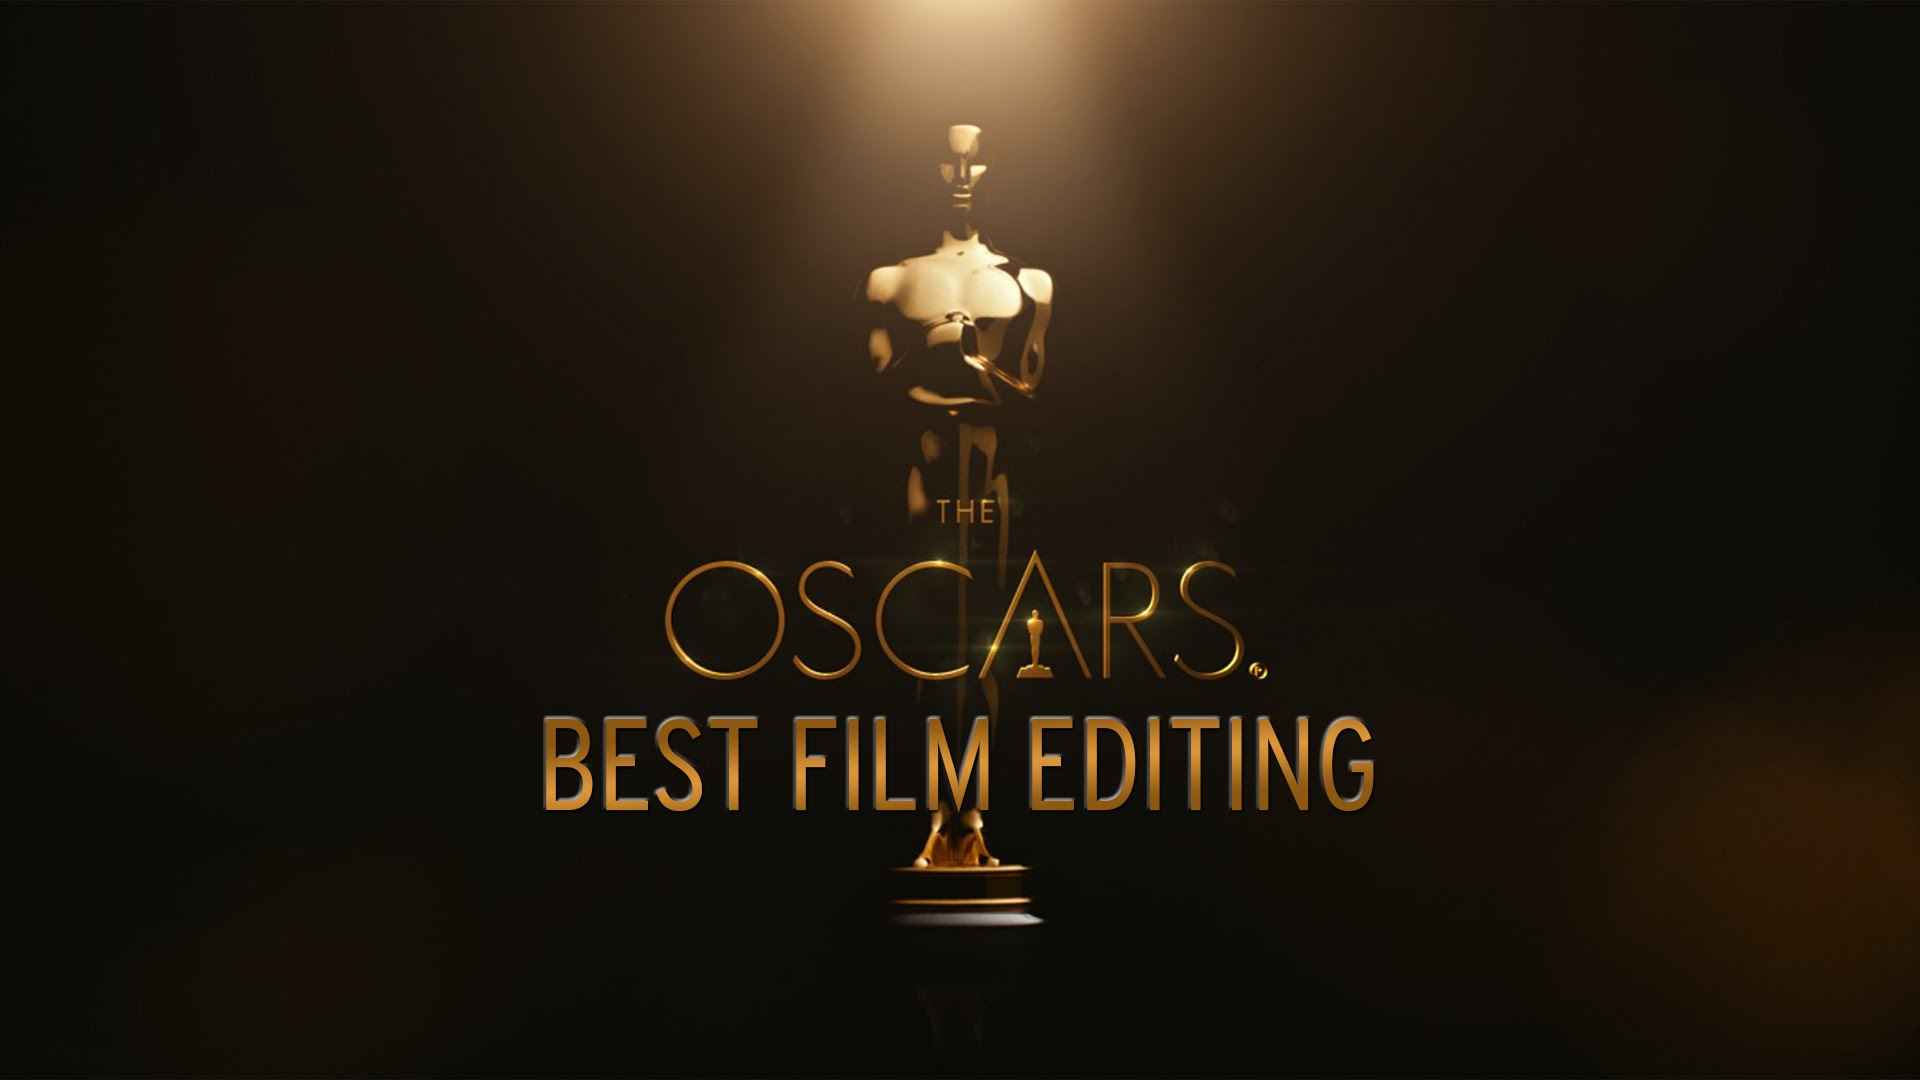 Radio Wallpaper Hd Podcast 137 Ace Editors Talk About Their Oscar Nominated